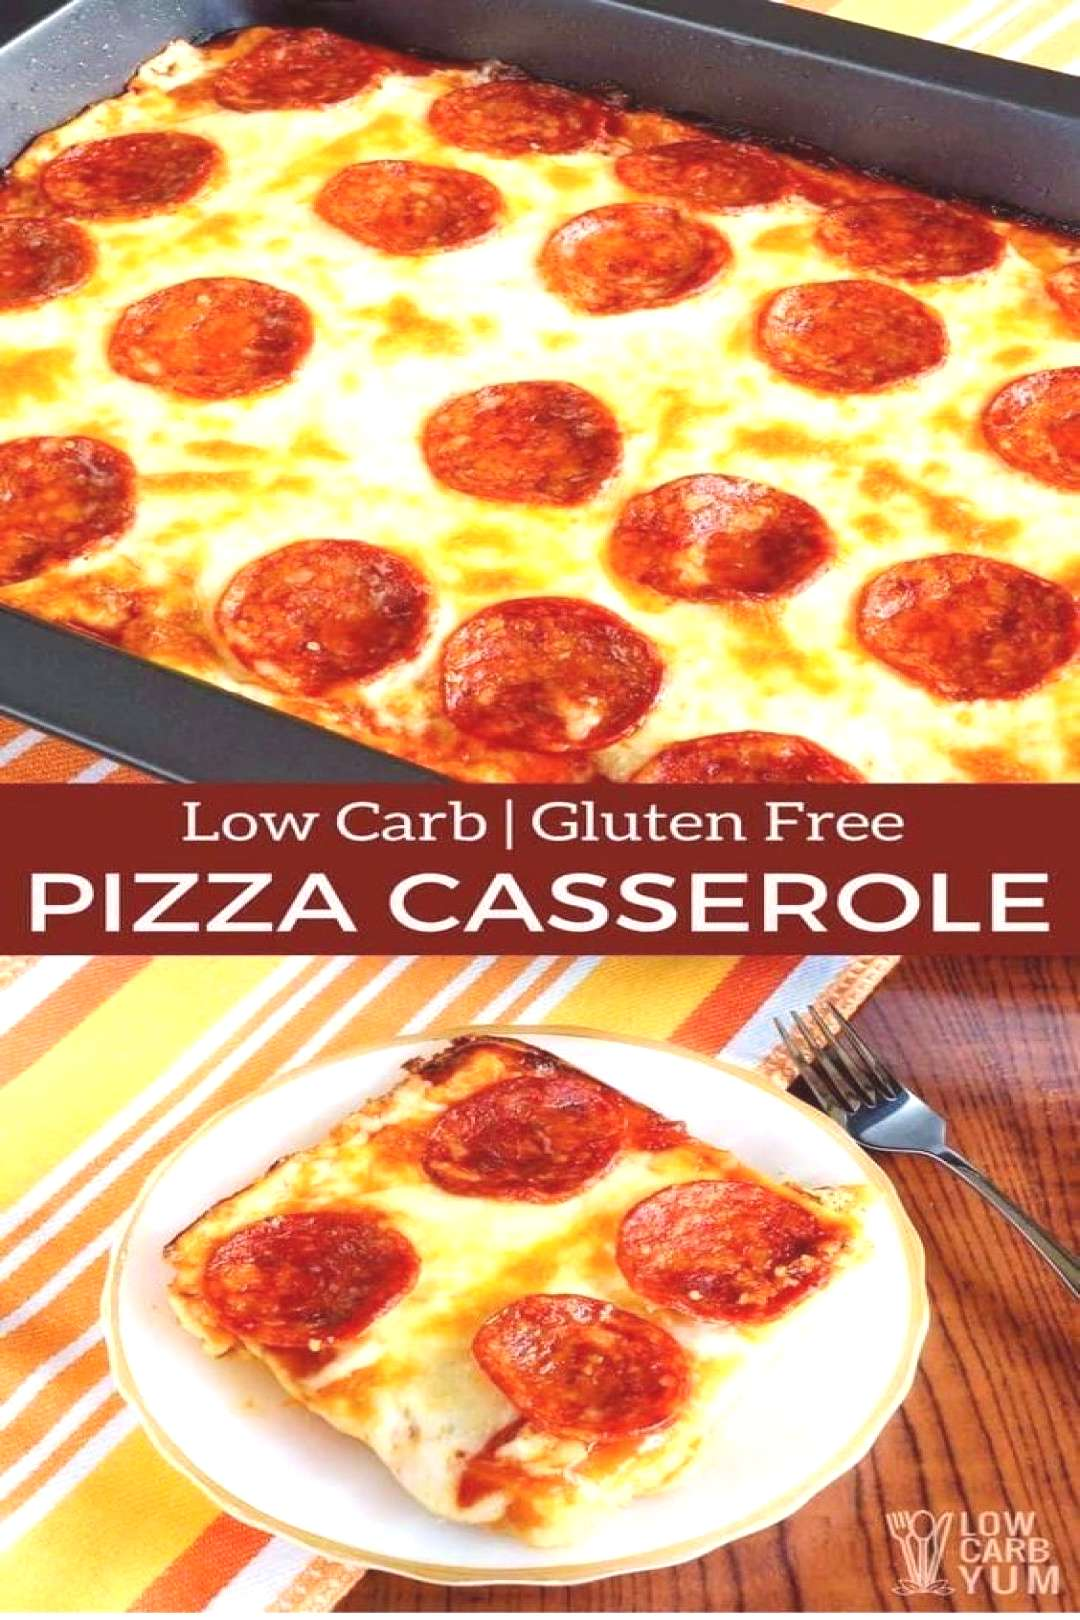 this LOW CARB | LOW CARB PIZZA CASSEROLE RECIPE is so yumm!! You must see the complete recipes.